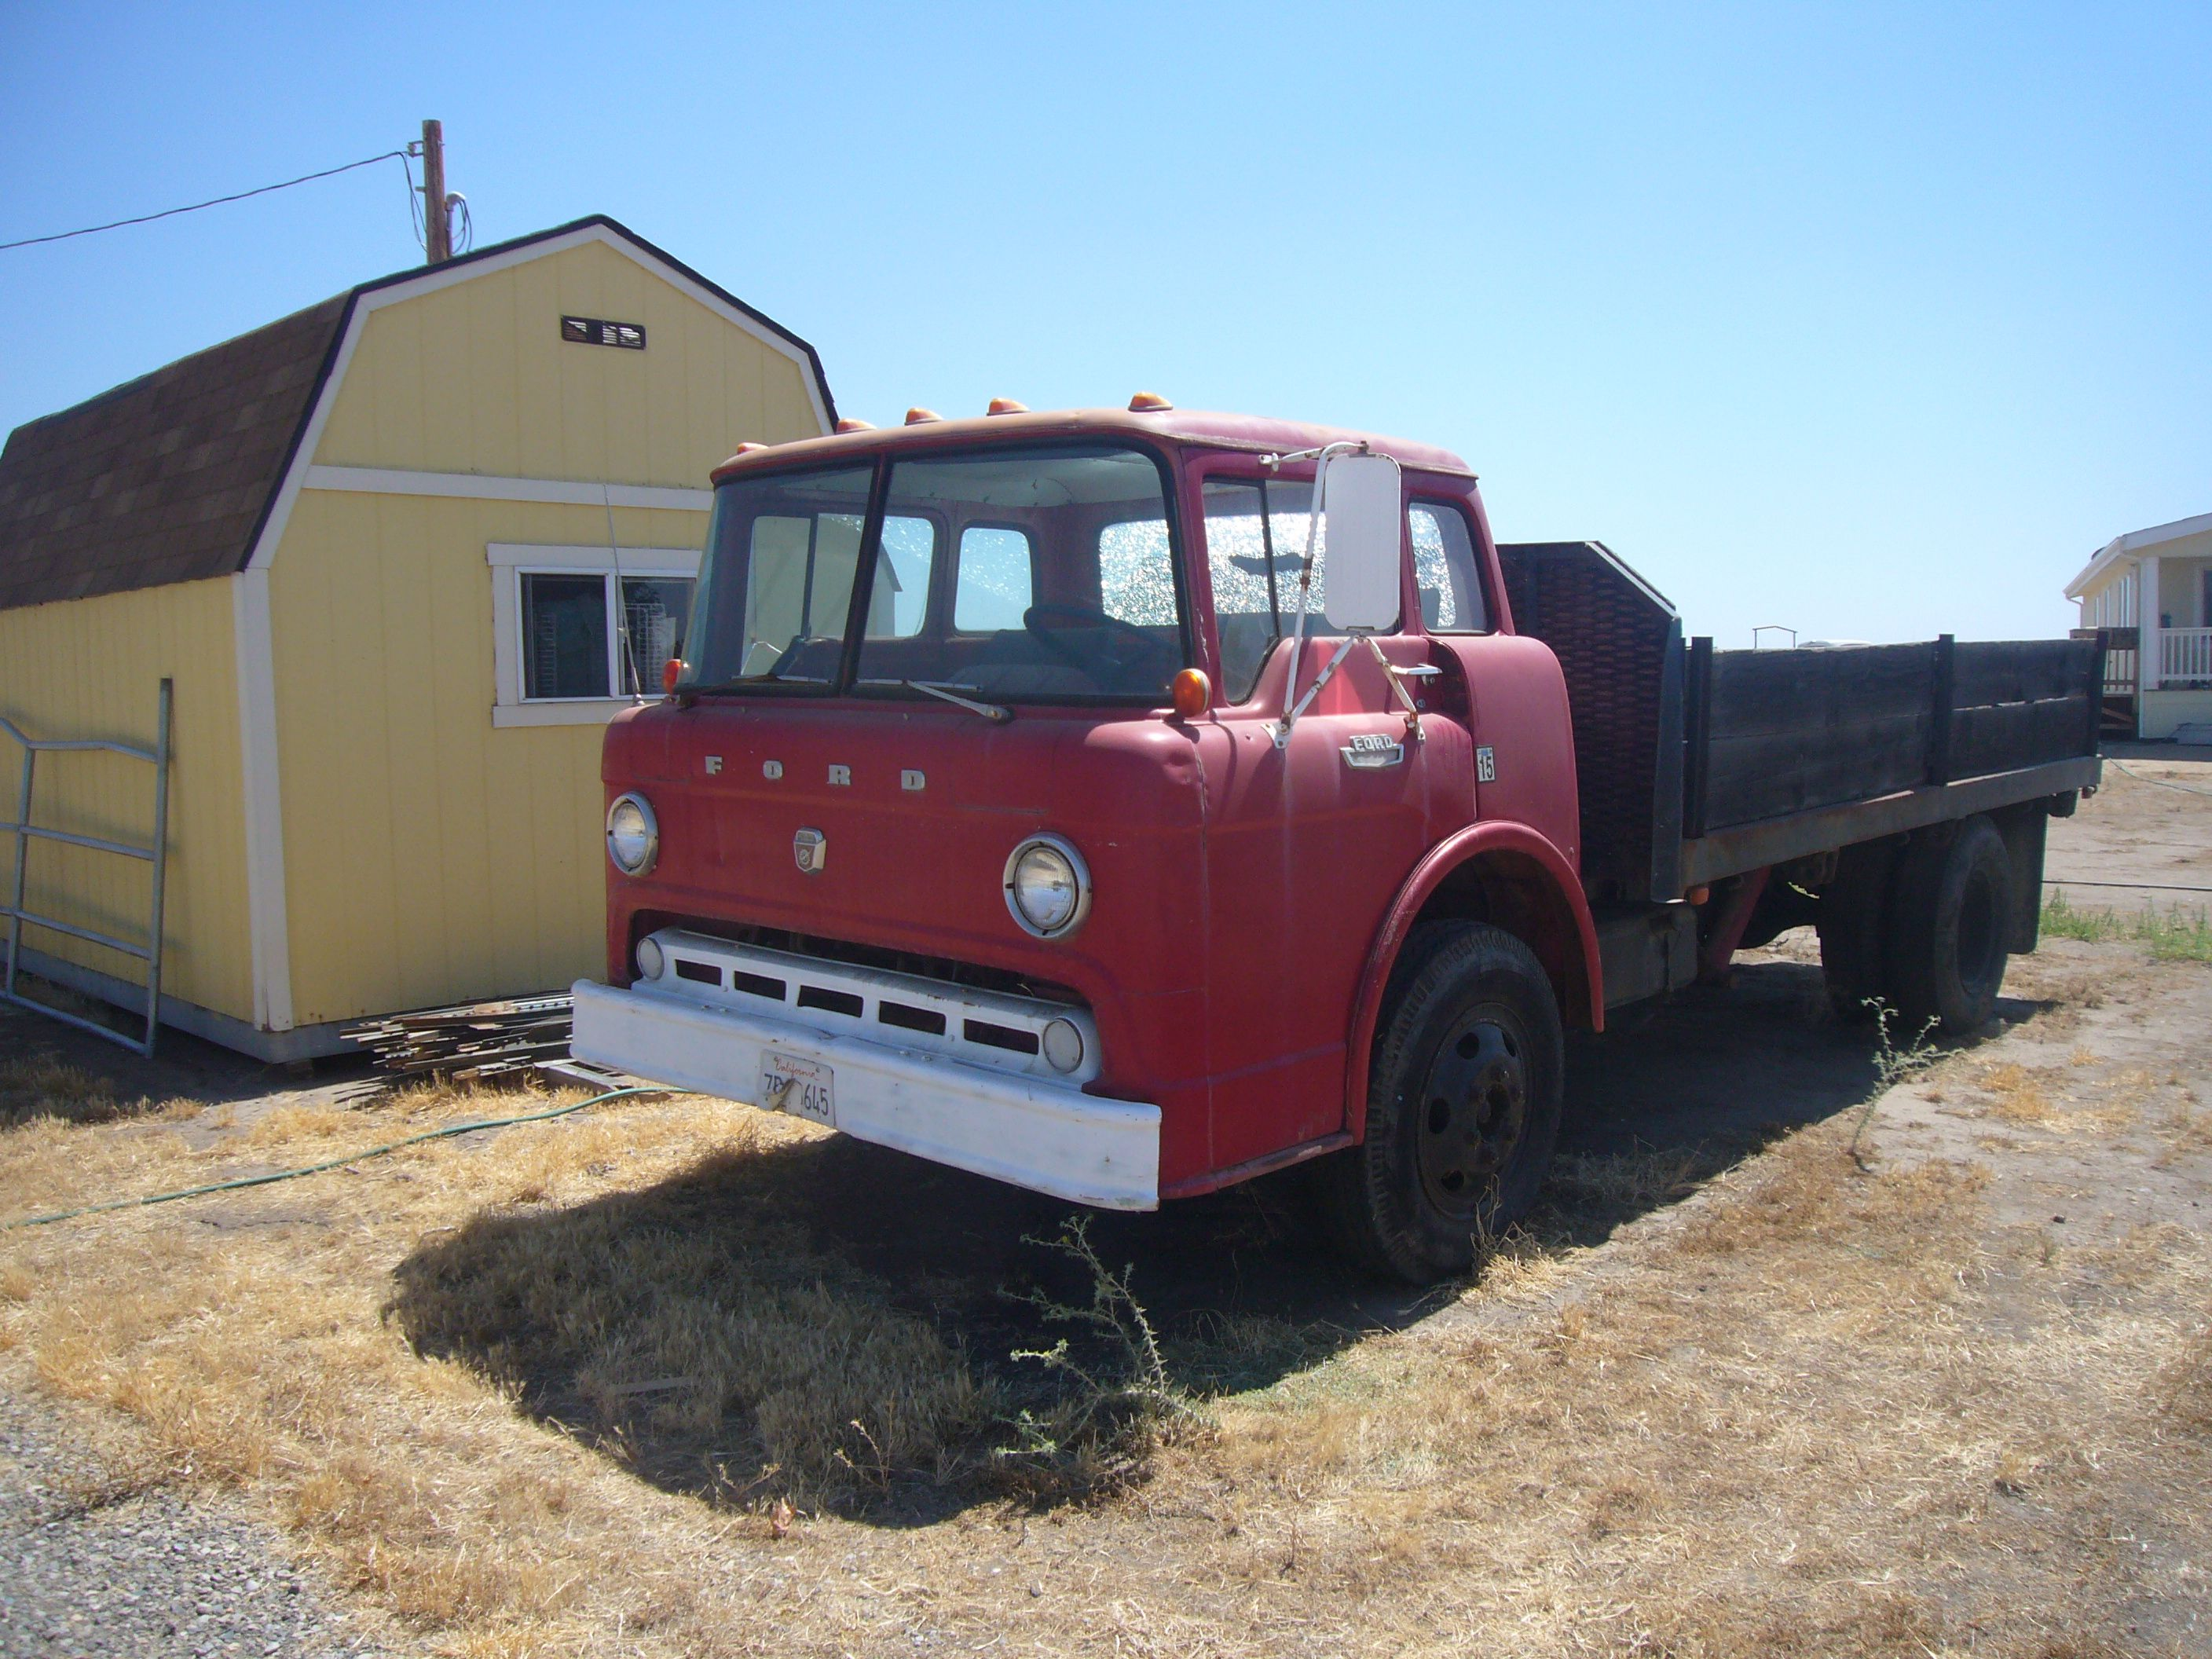 1972 Ford C800 Truck (Big Red) with 150k Miles Авто